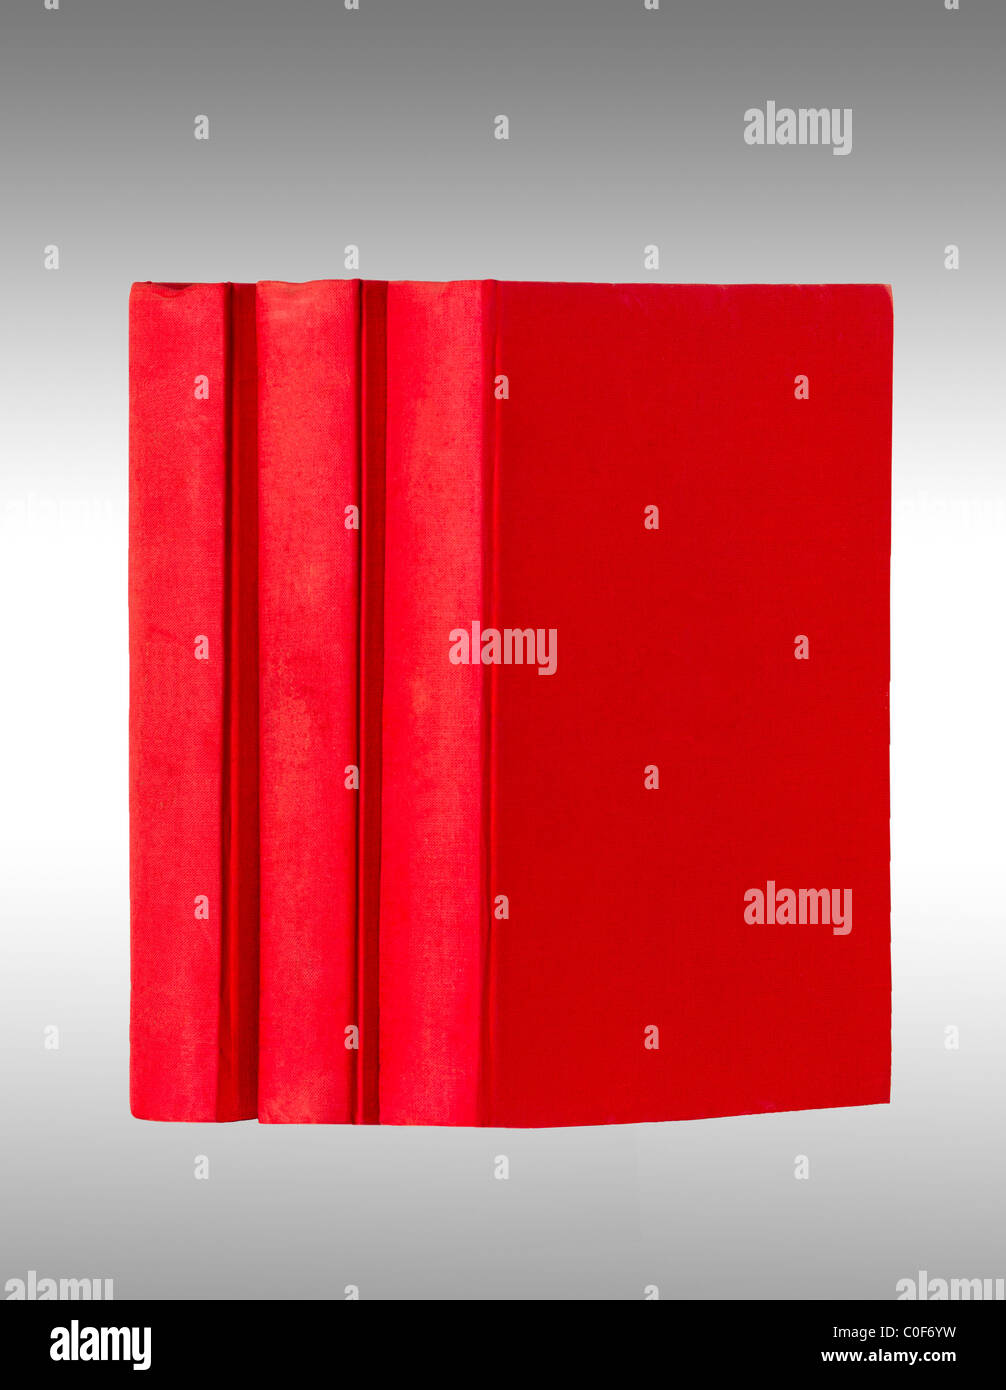 three red books untitled on a neutral background - Stock Image